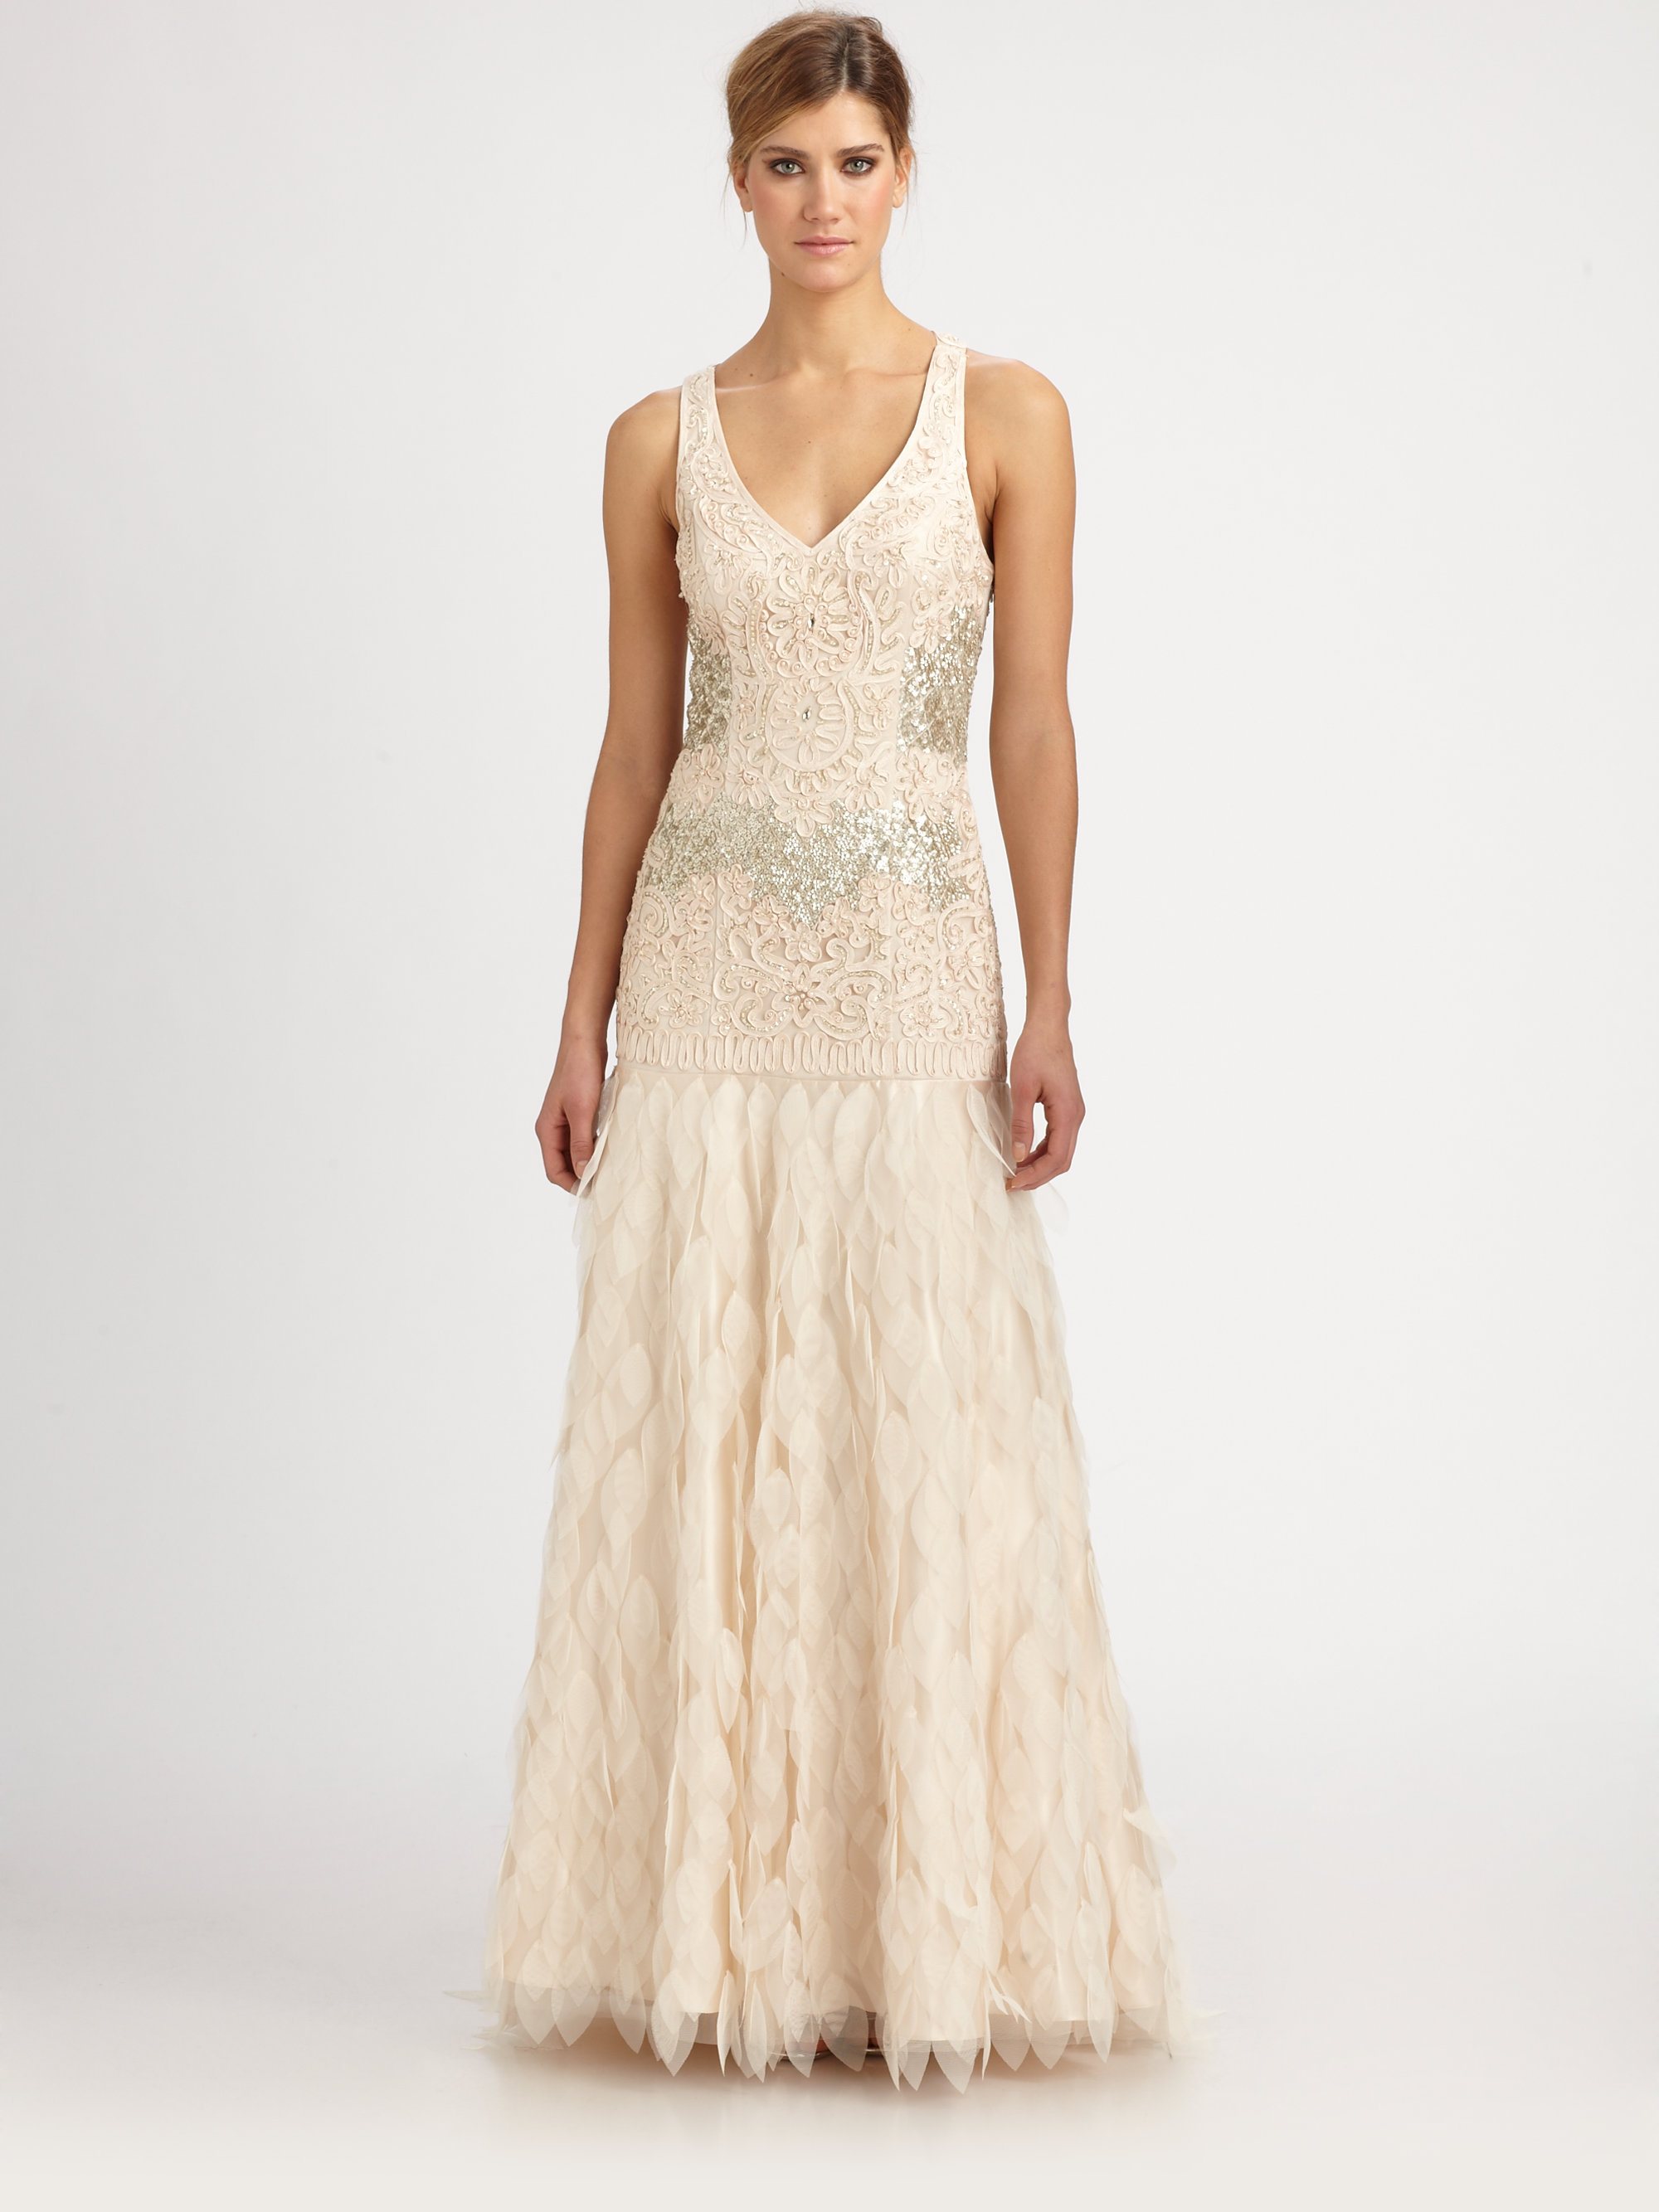 Lyst - Sue Wong Beaded Petal Gown in Pink